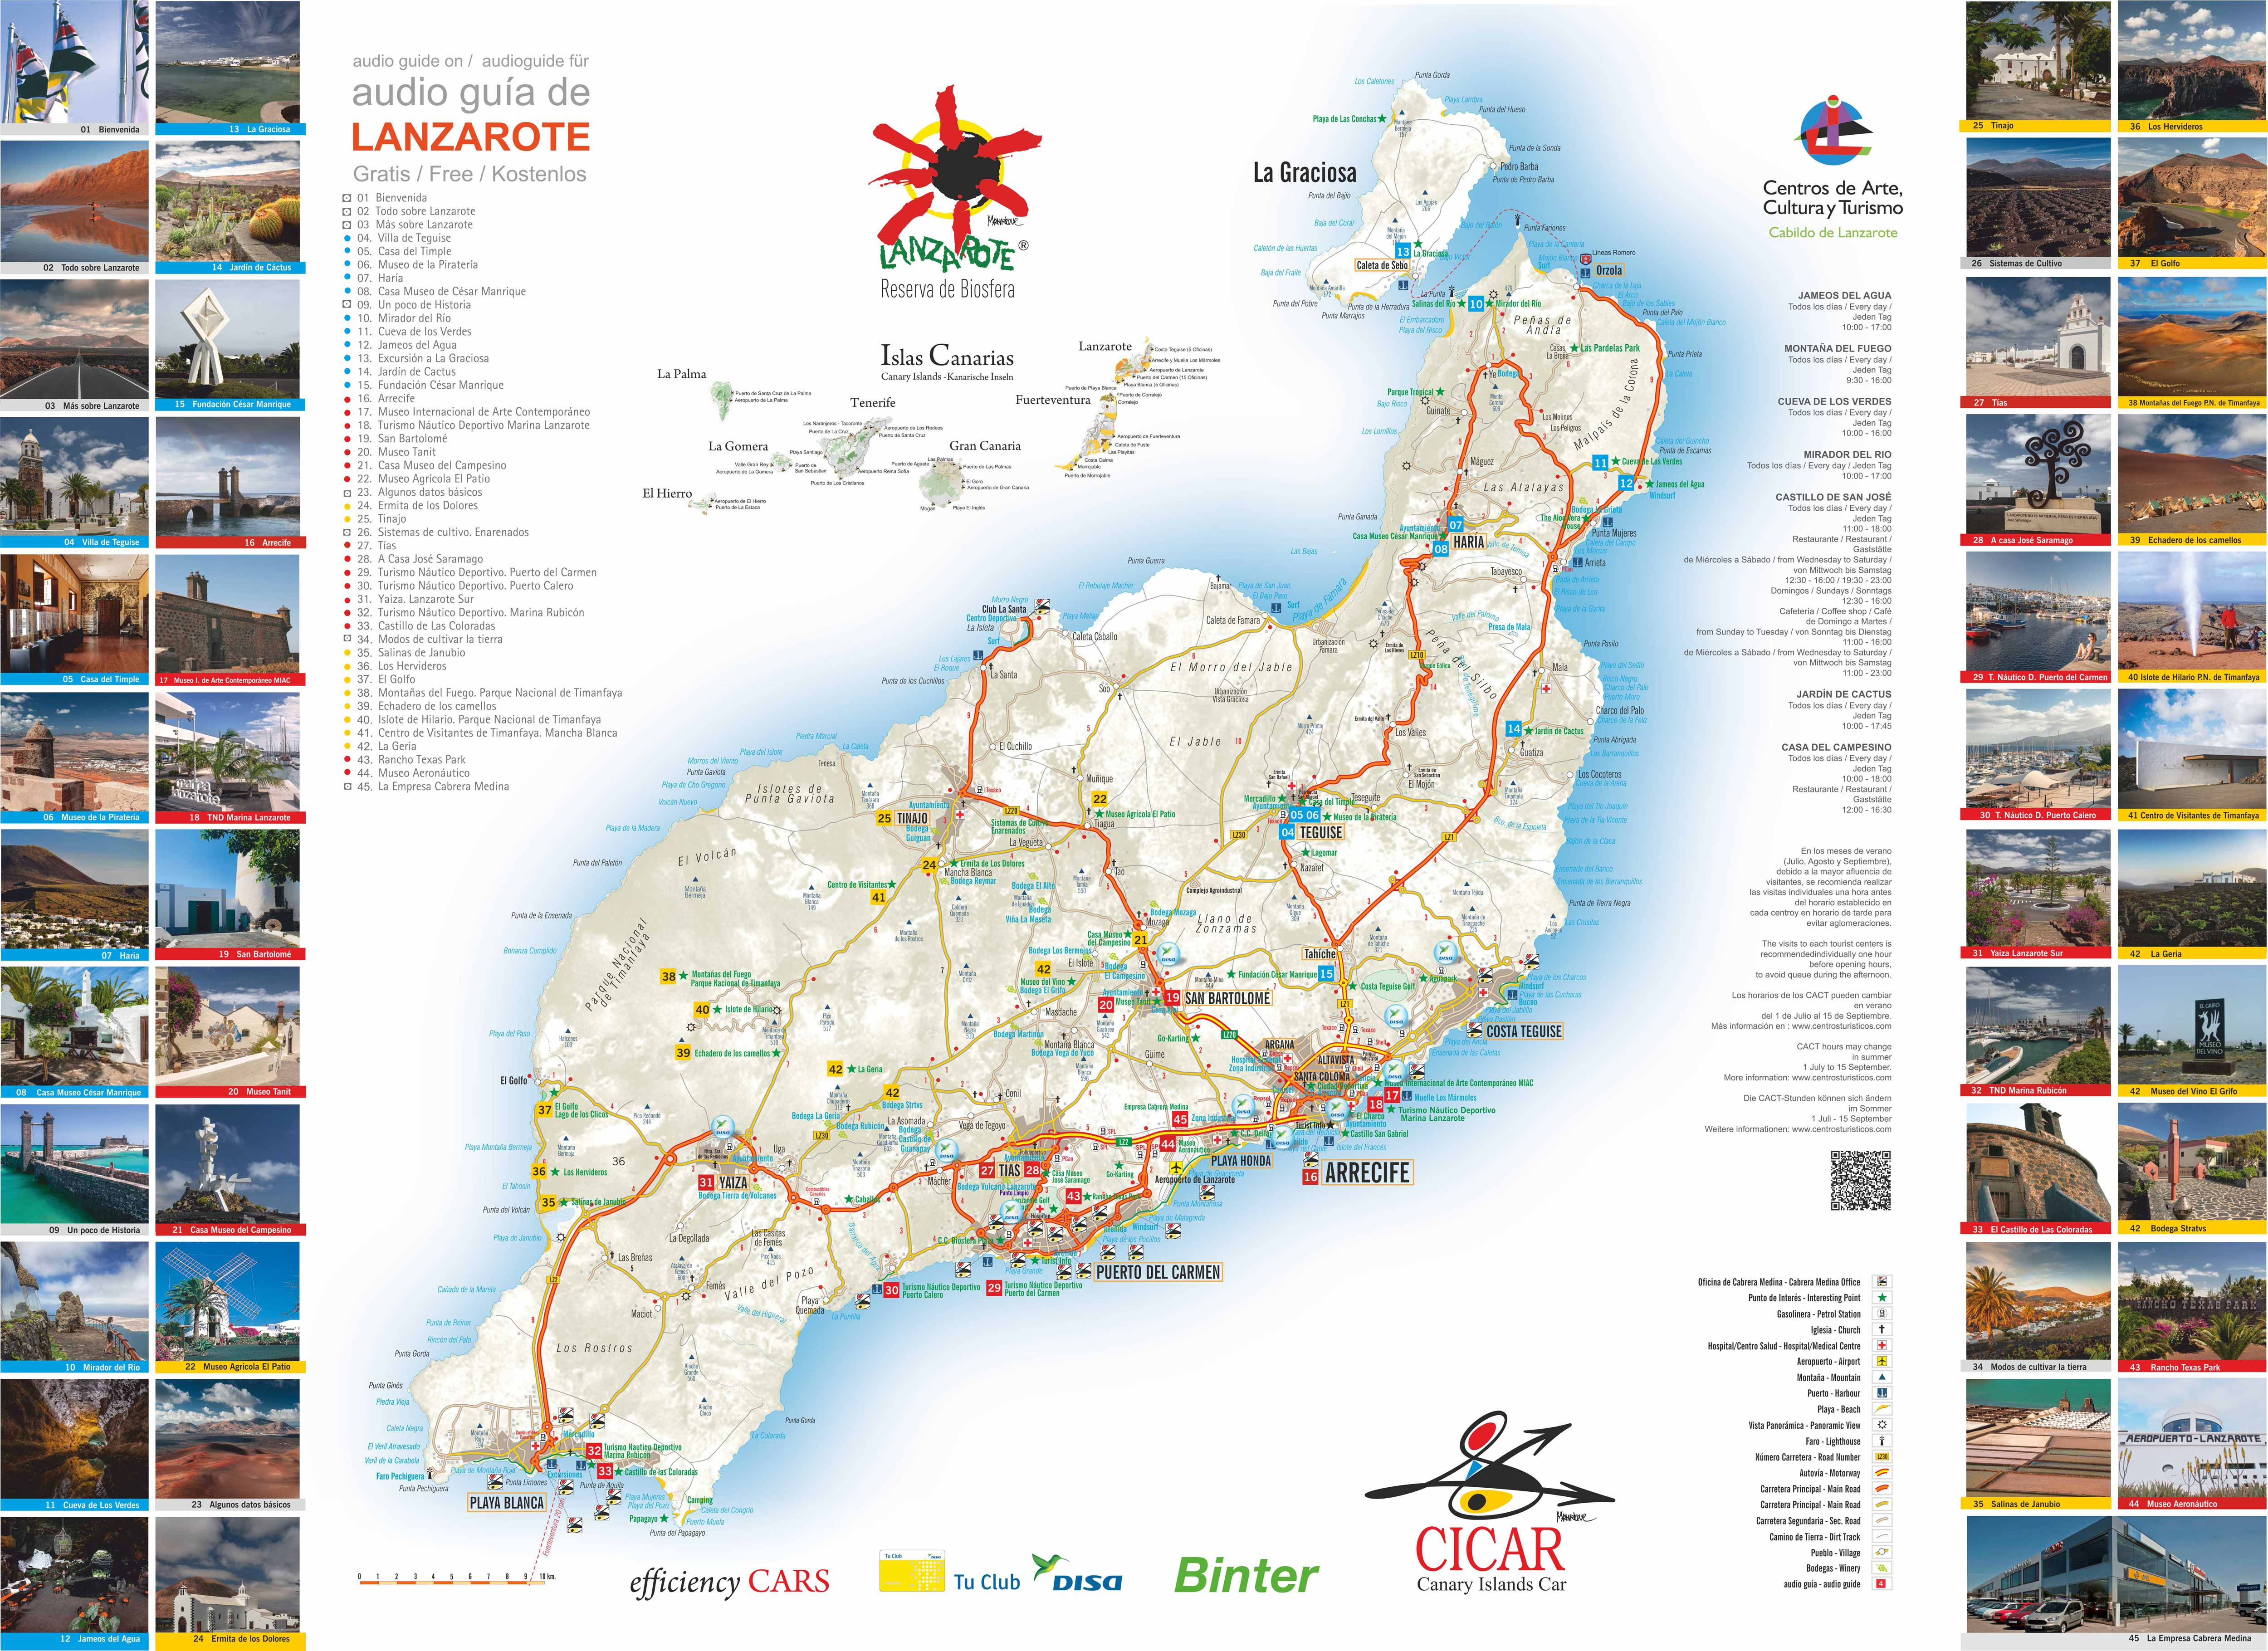 Canary islands maps cicar lanzarote map gumiabroncs Image collections